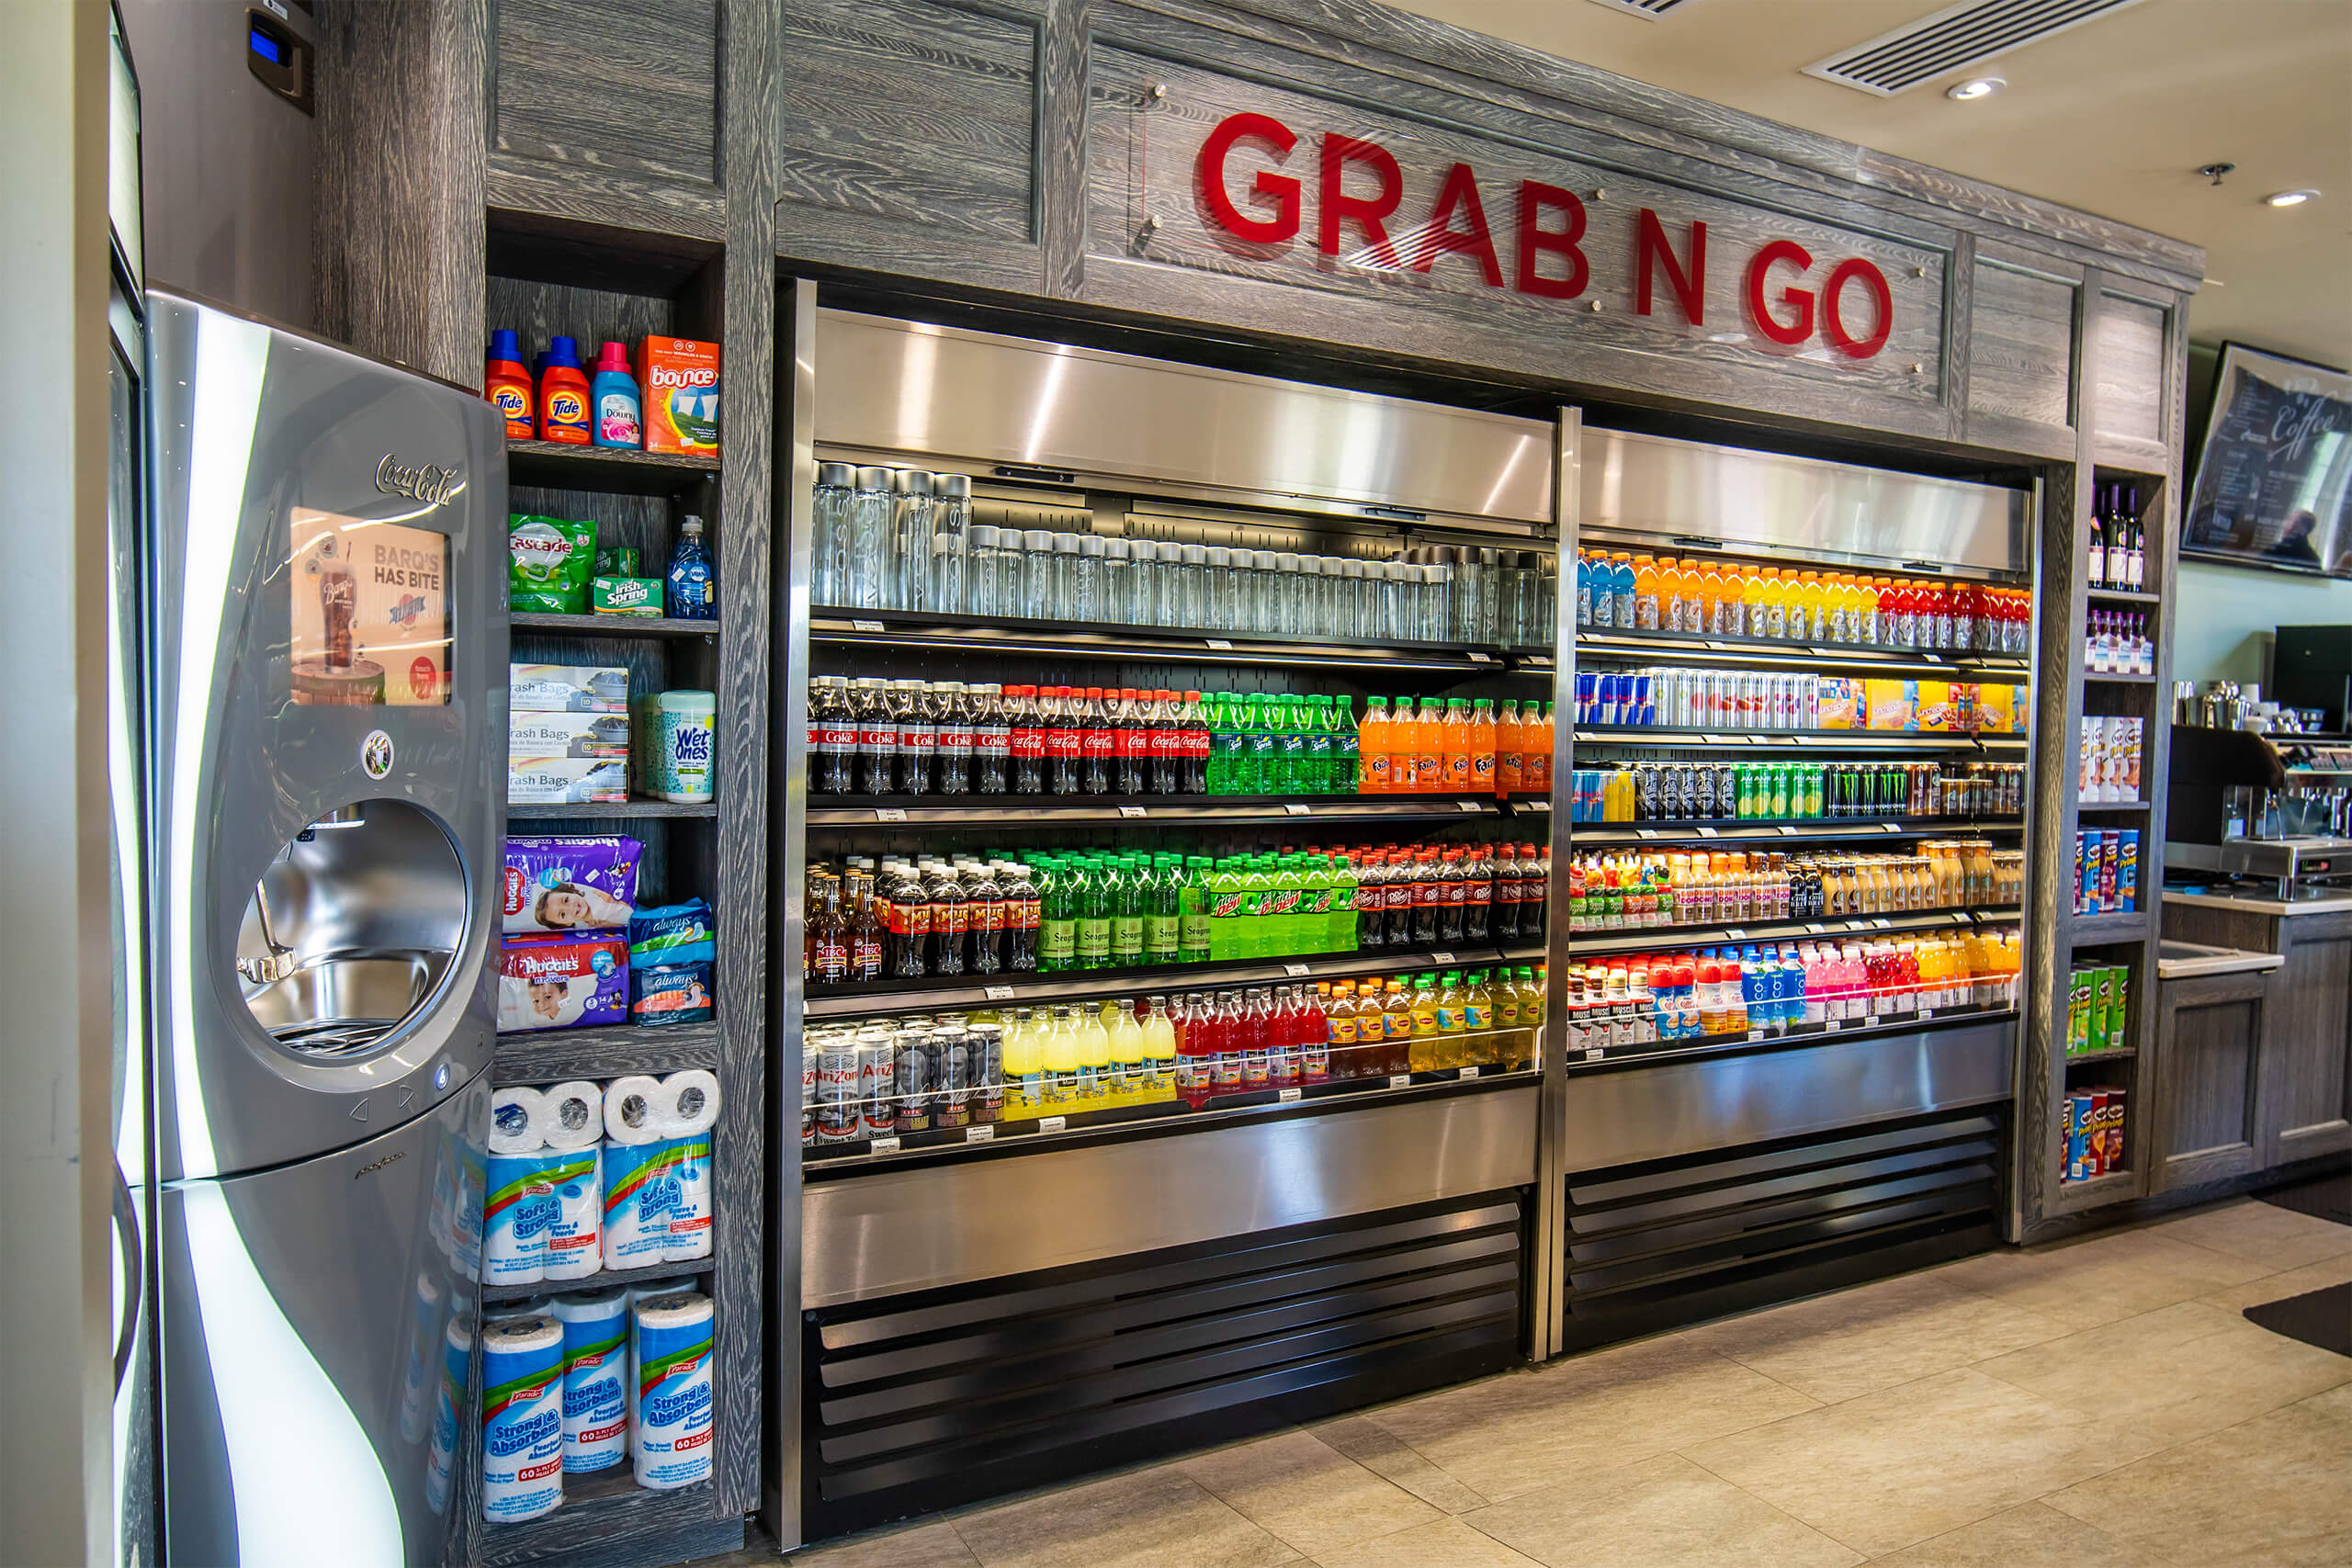 The Encore Resort Clubhouse Grab 'N Go store's refrigerator filled with soft drinks and other beverages.